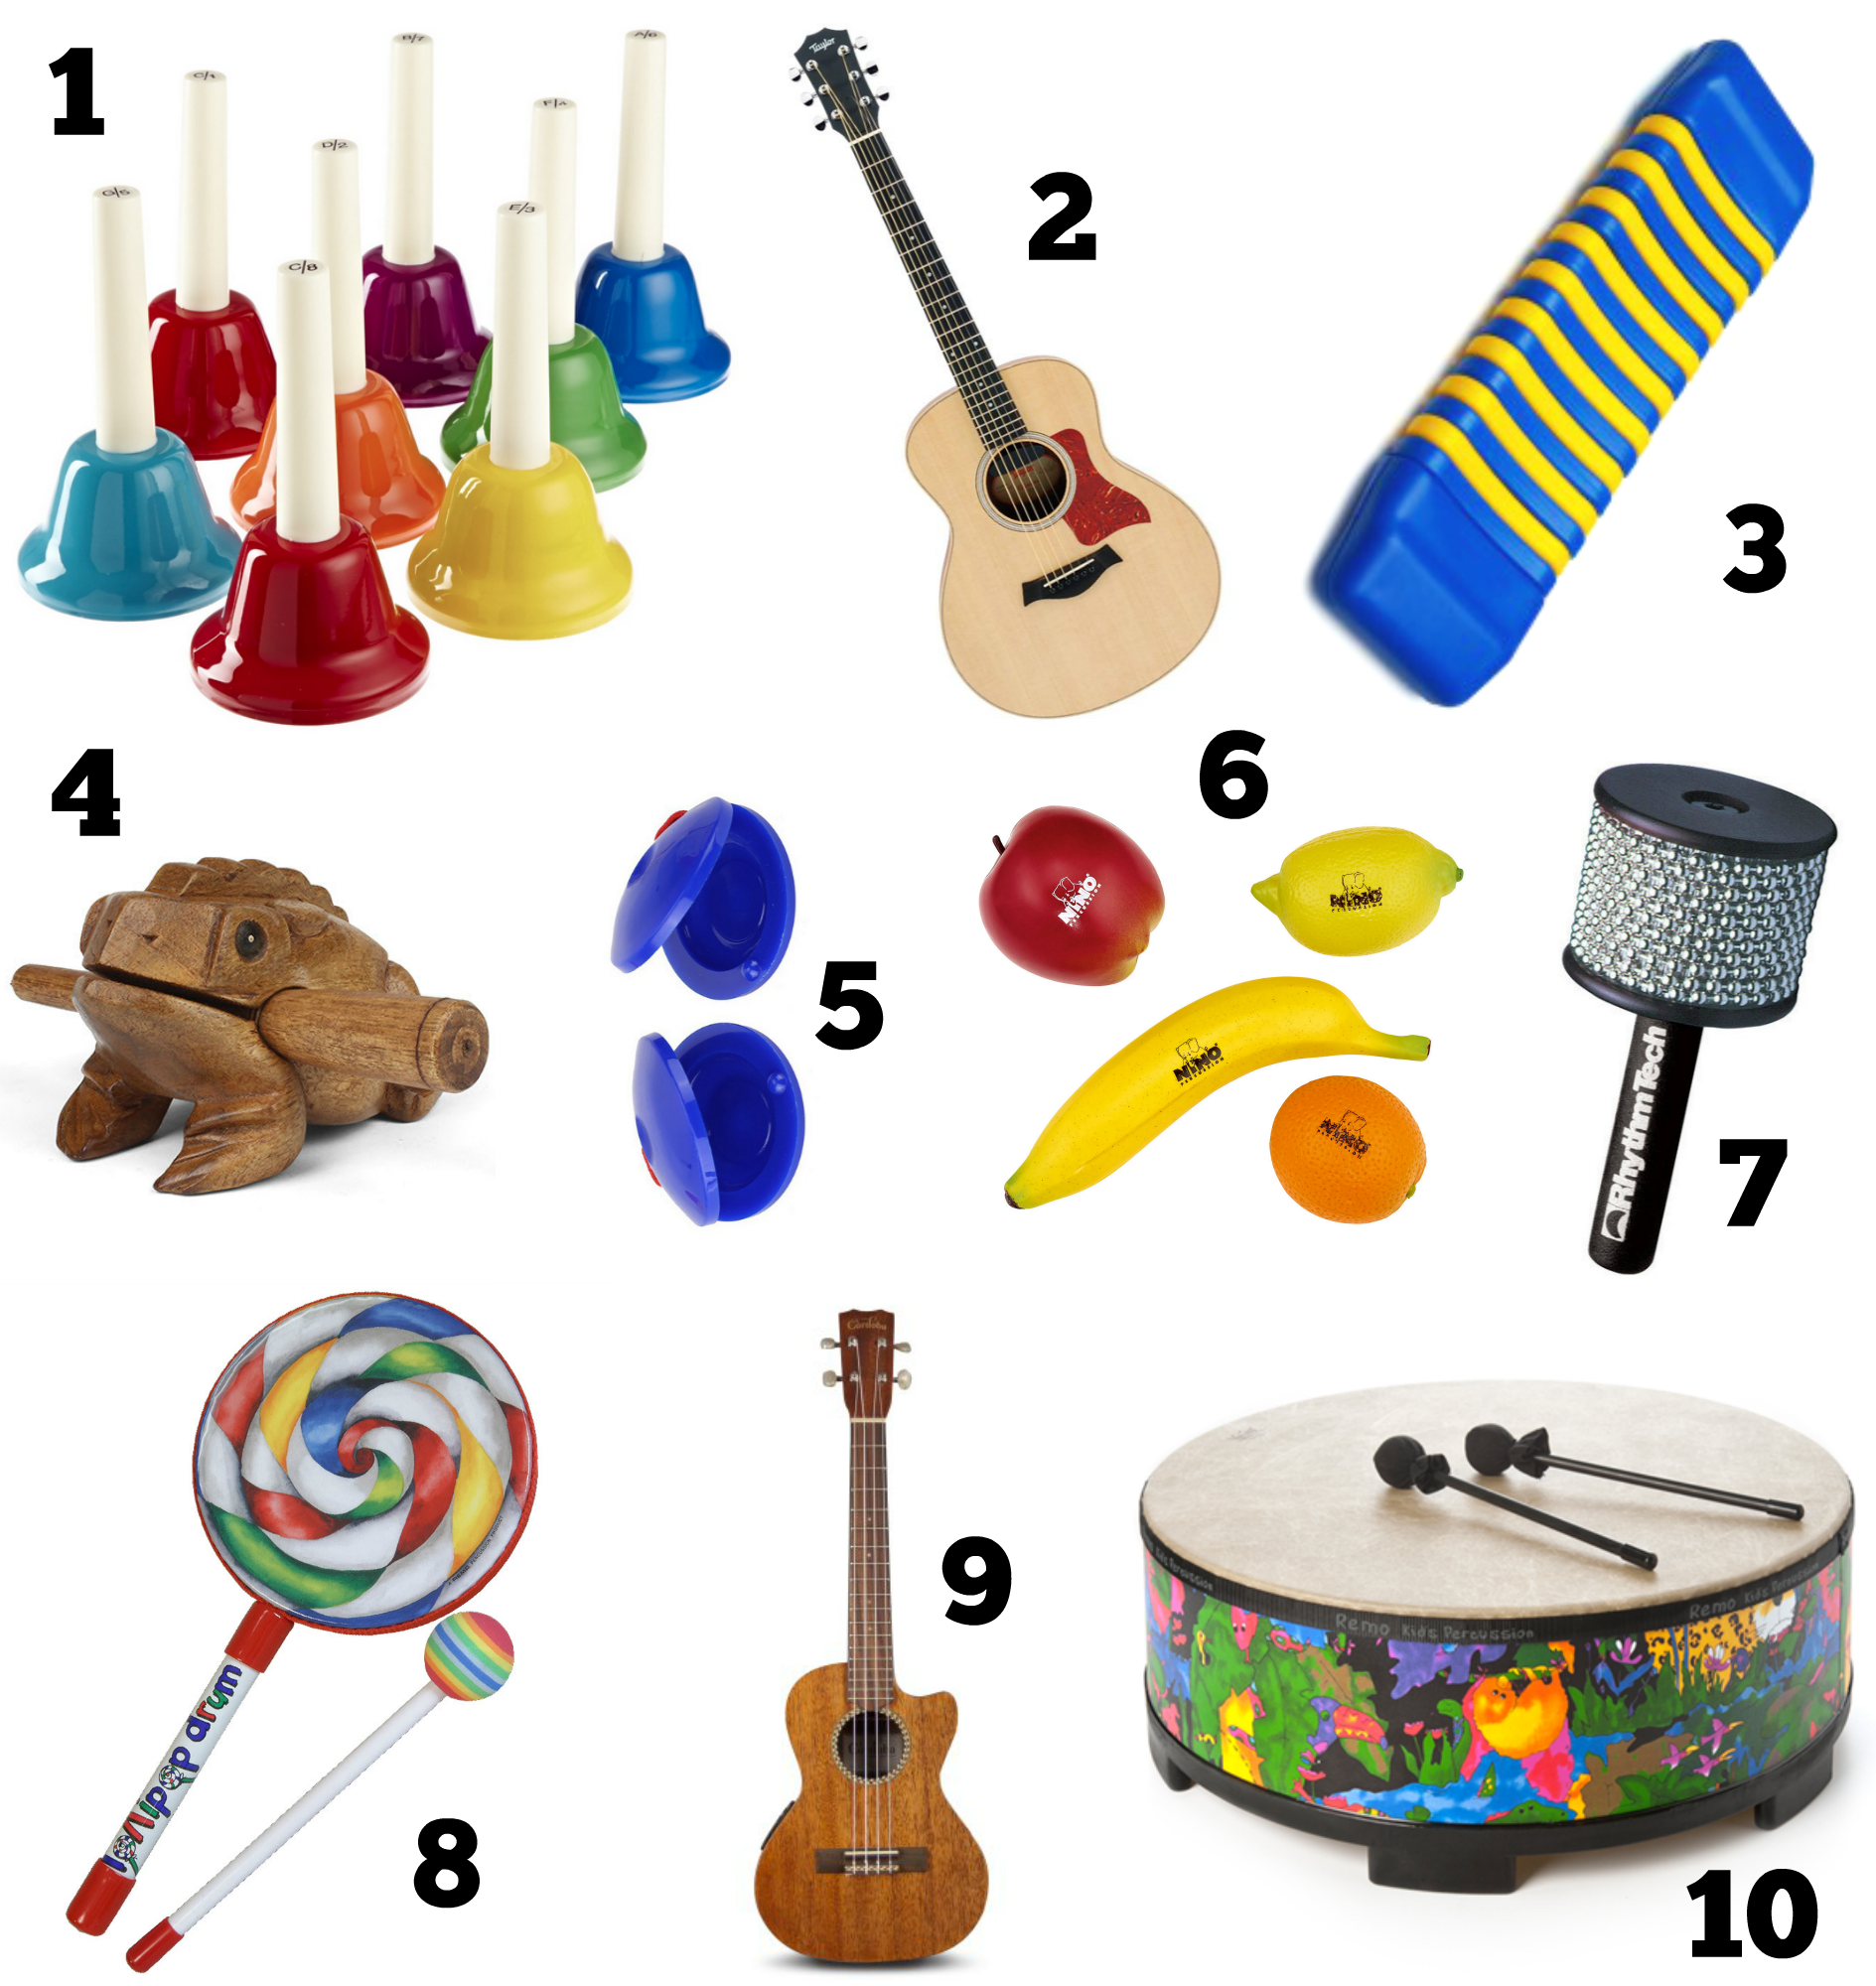 My Top 10 Music Therapy Instruments